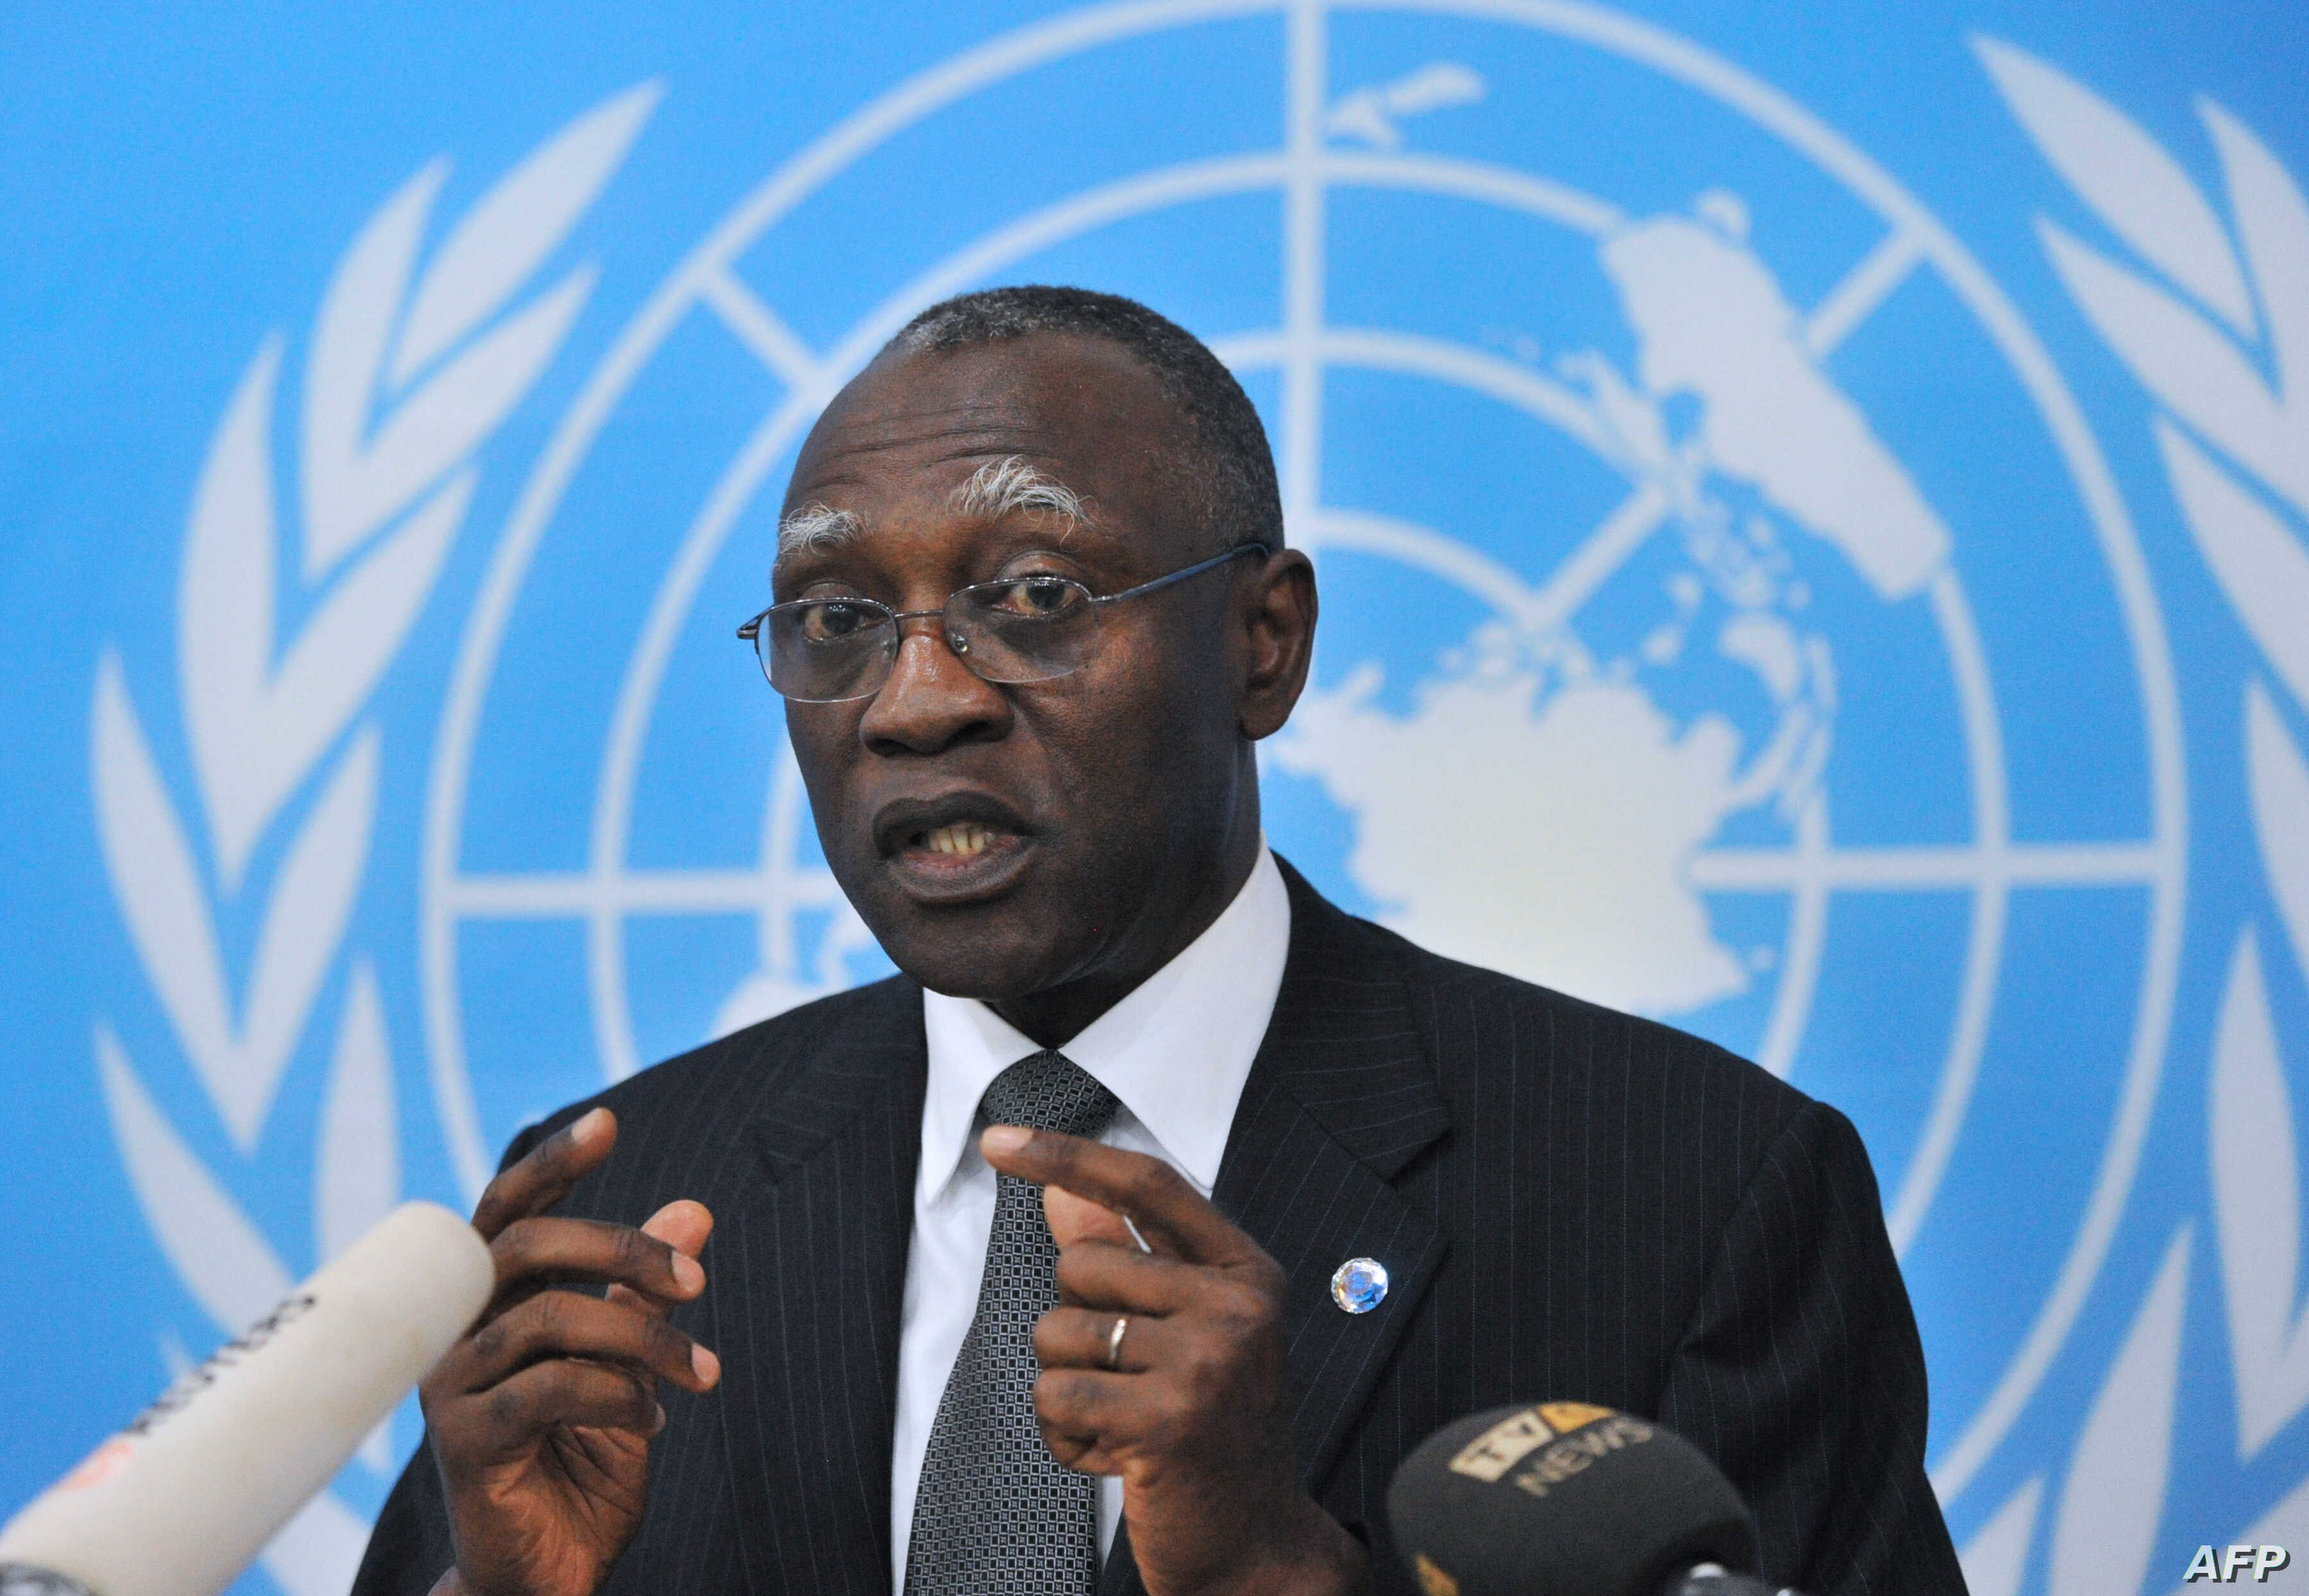 General Babacar Gaye, the UN secretary-general's representative to Central African Republic, speaks on Feb. 6, 2014, at the BINUCI (United Nations Integrated Peacebuilding Office in the Central African Republic) headquarters in Bangui.